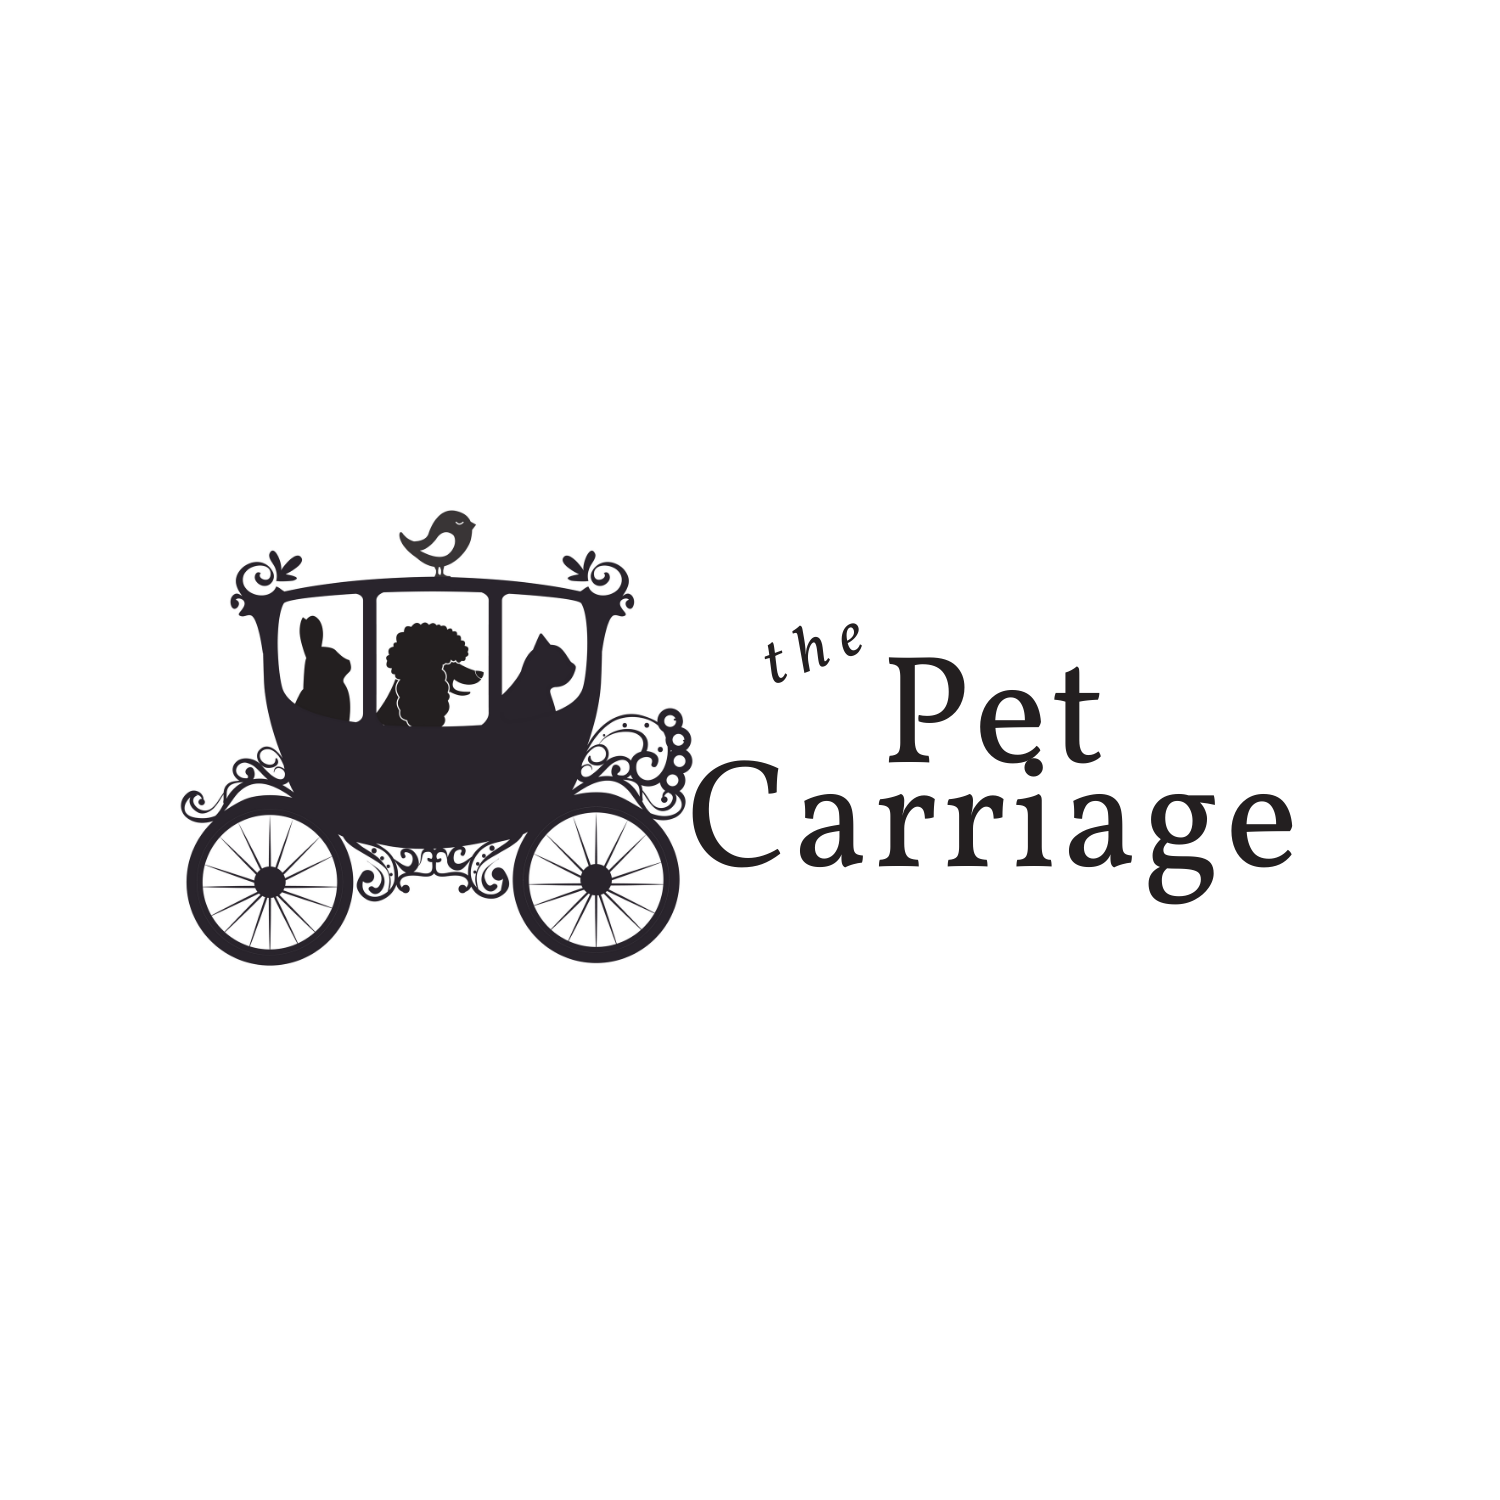 The Pet Carriage